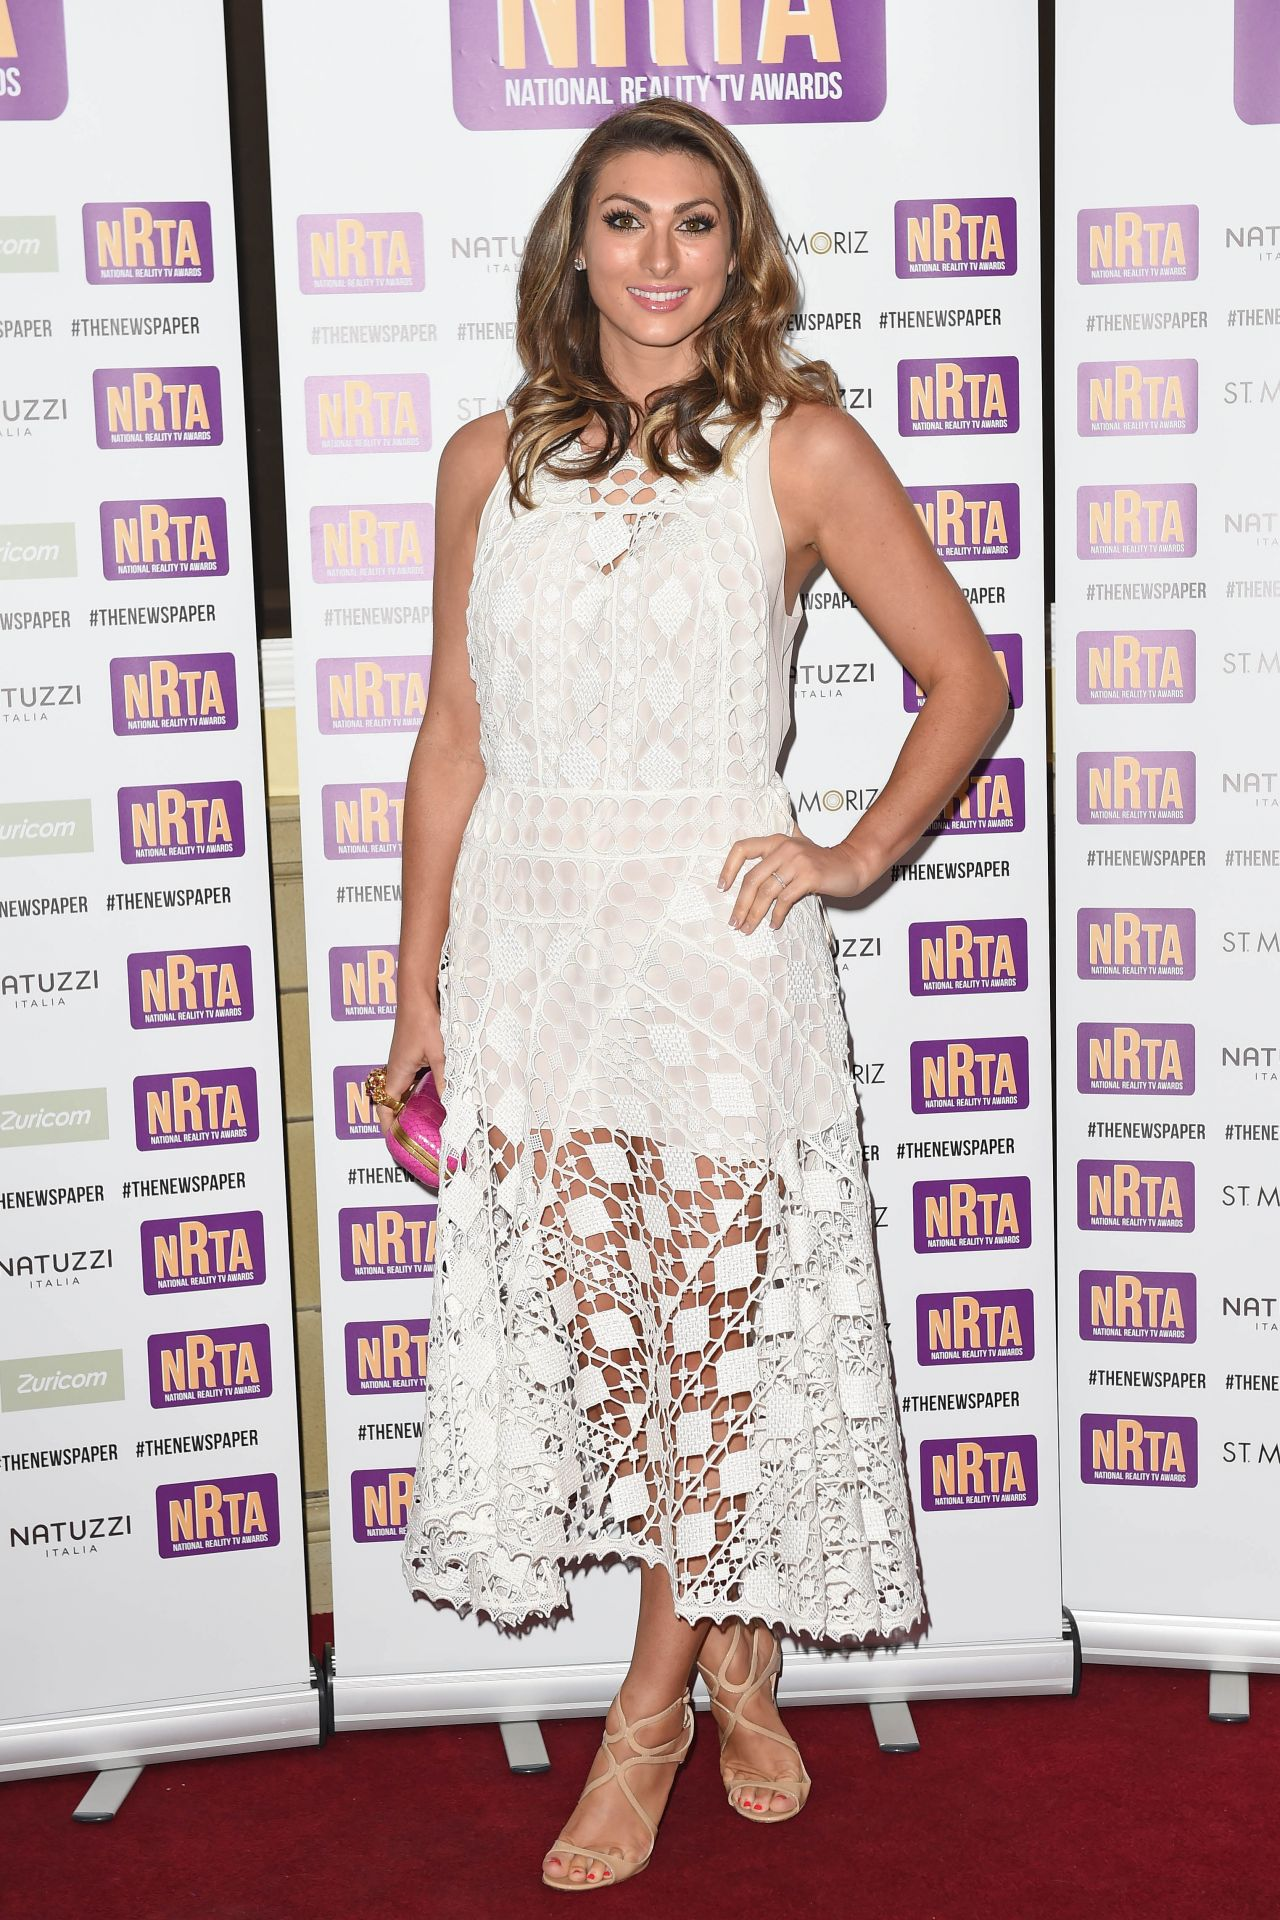 Luisa Zissman - The National Reality TV Awards 2014 in London